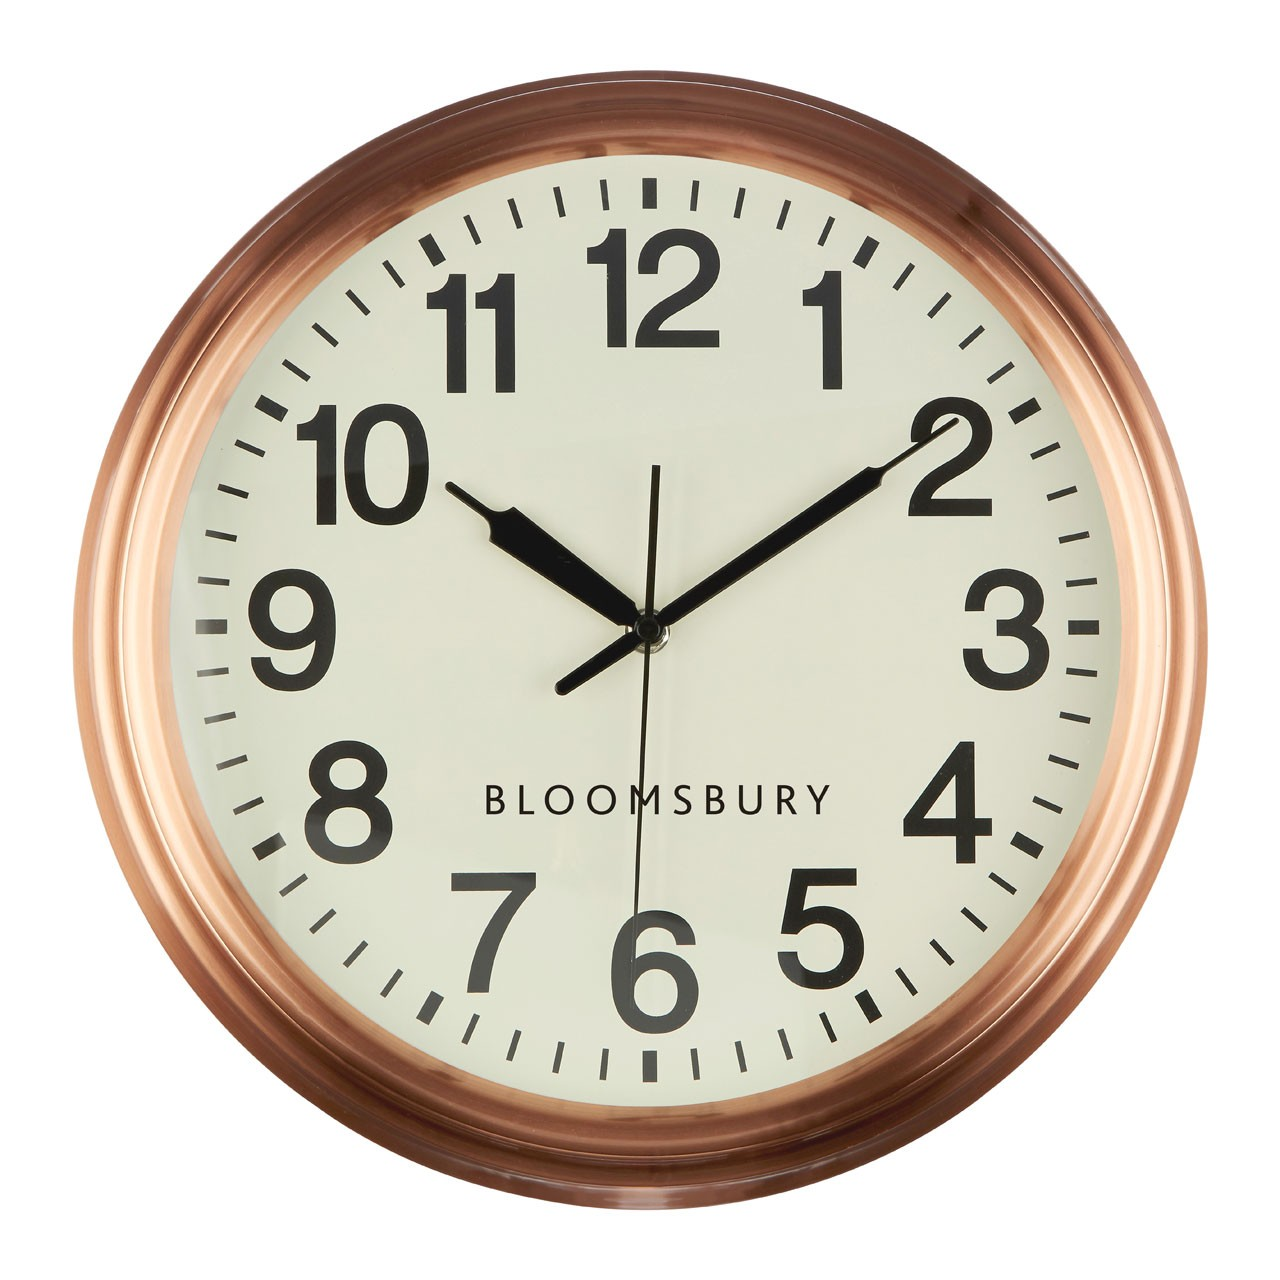 Prime Furnishing Bloomsbury Wall Clock, Metal - Copper